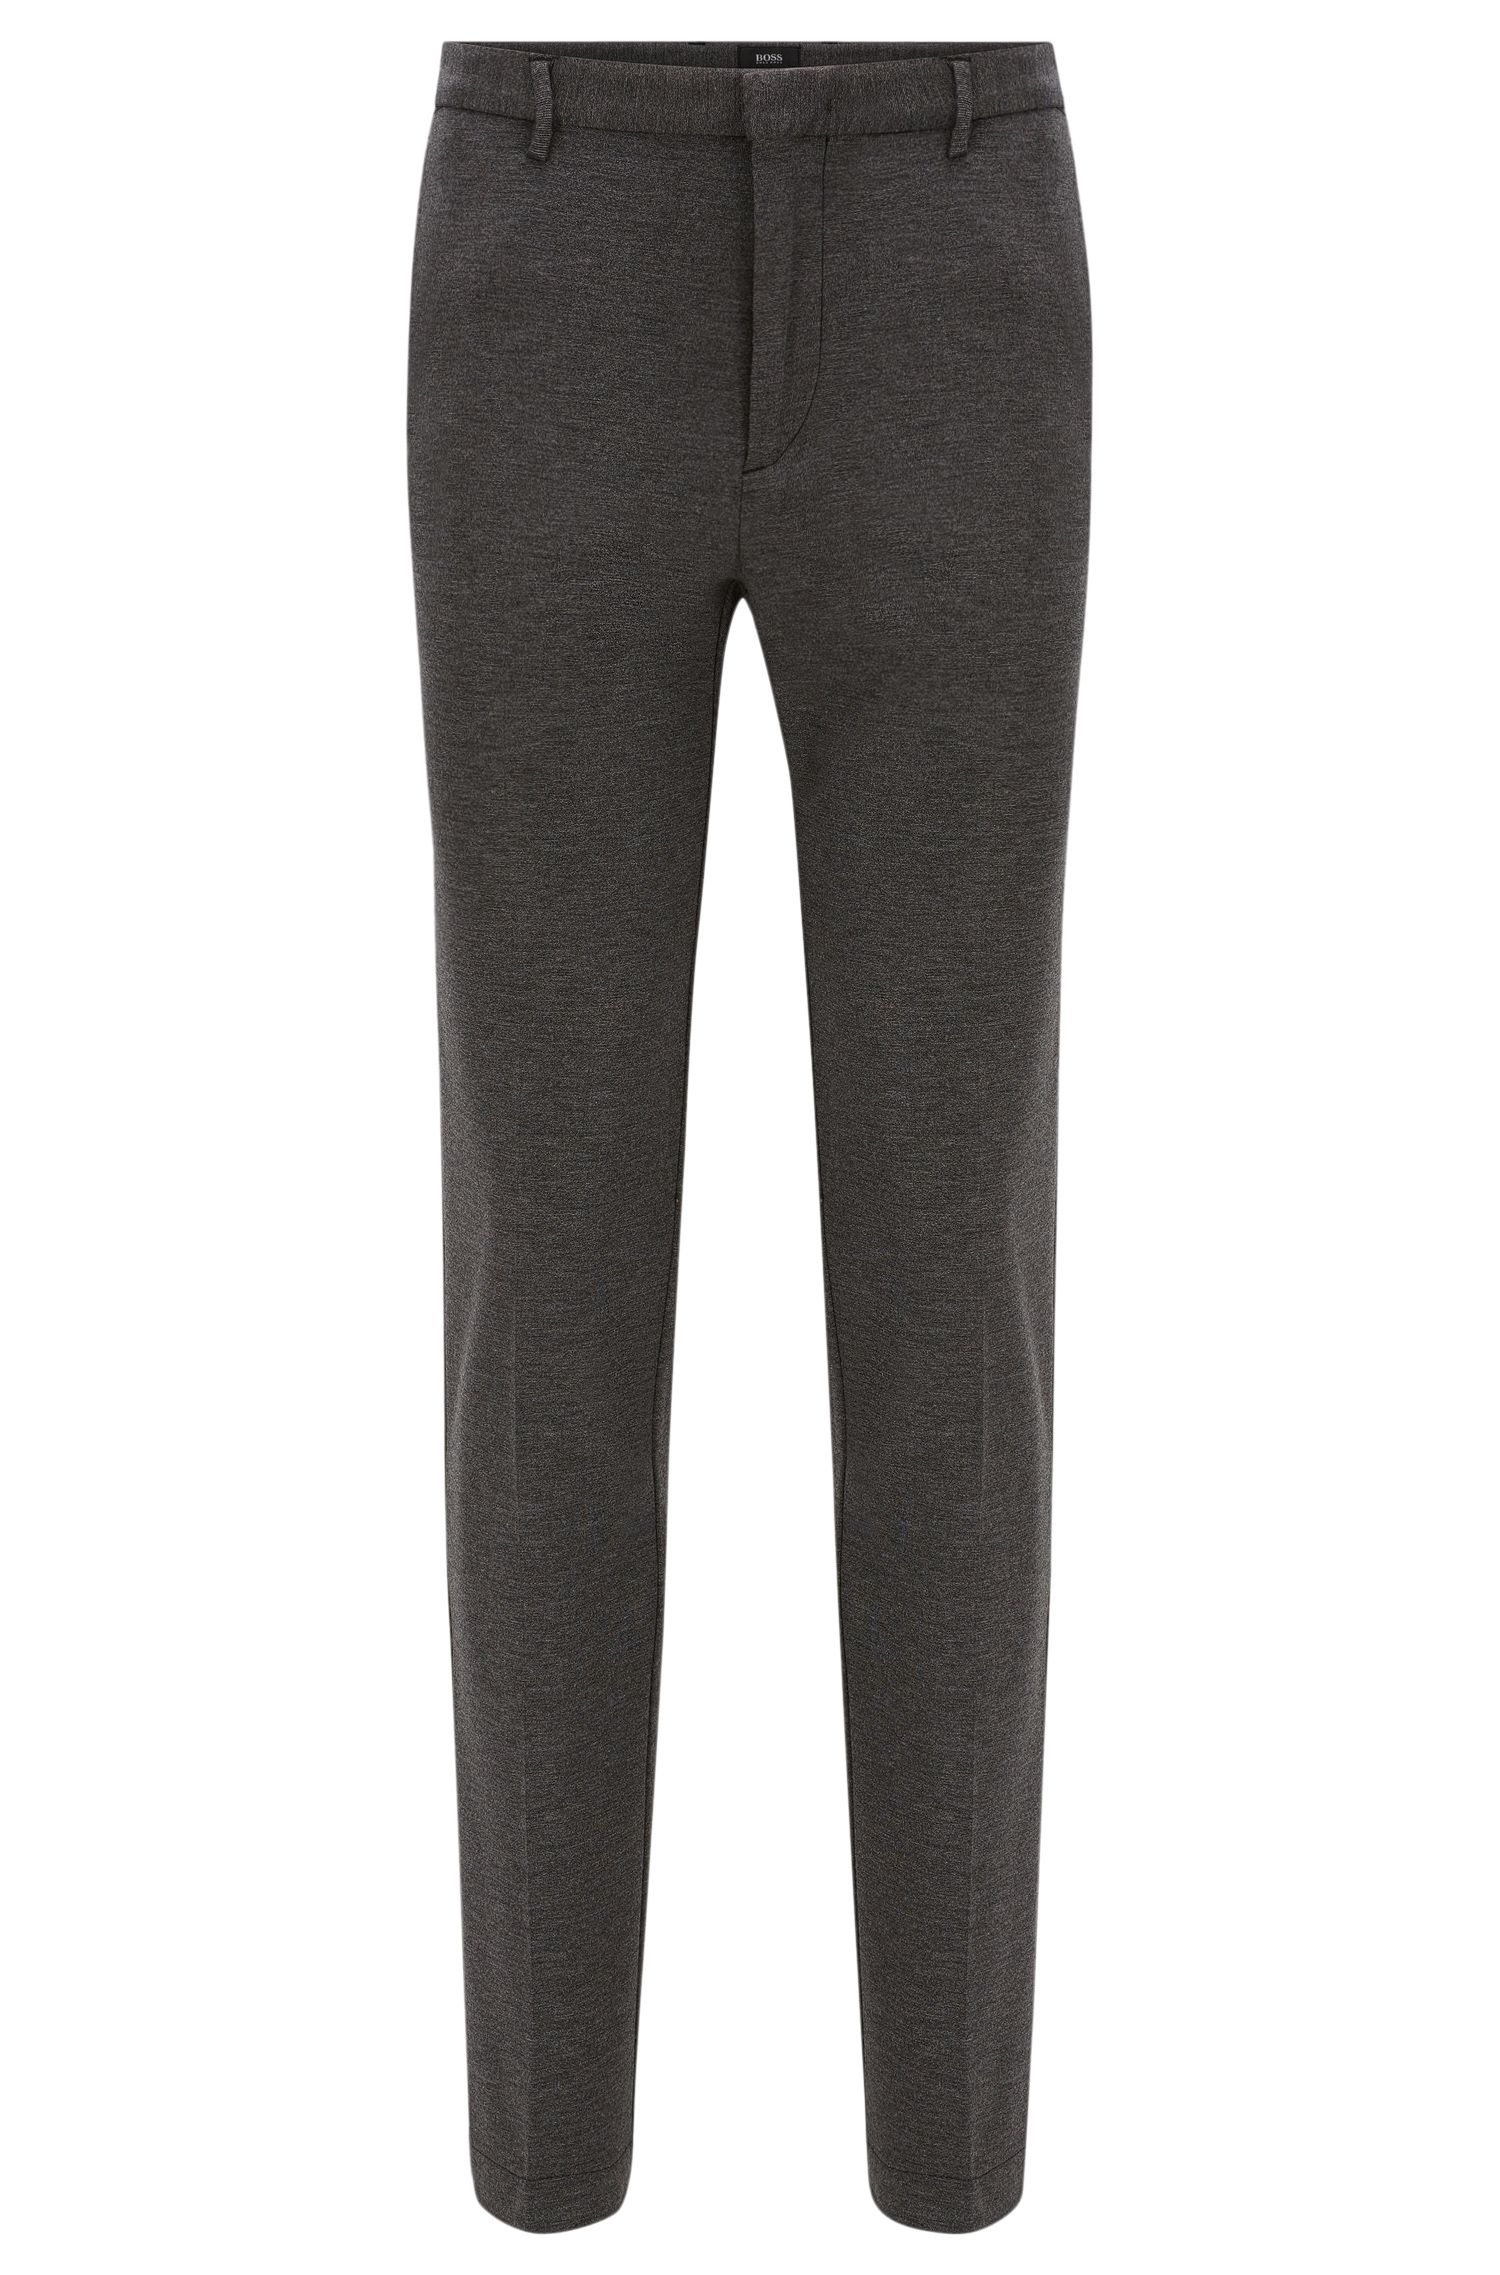 'Kaito W' | Slim Fit, Stretch Melange Jersey Trousers